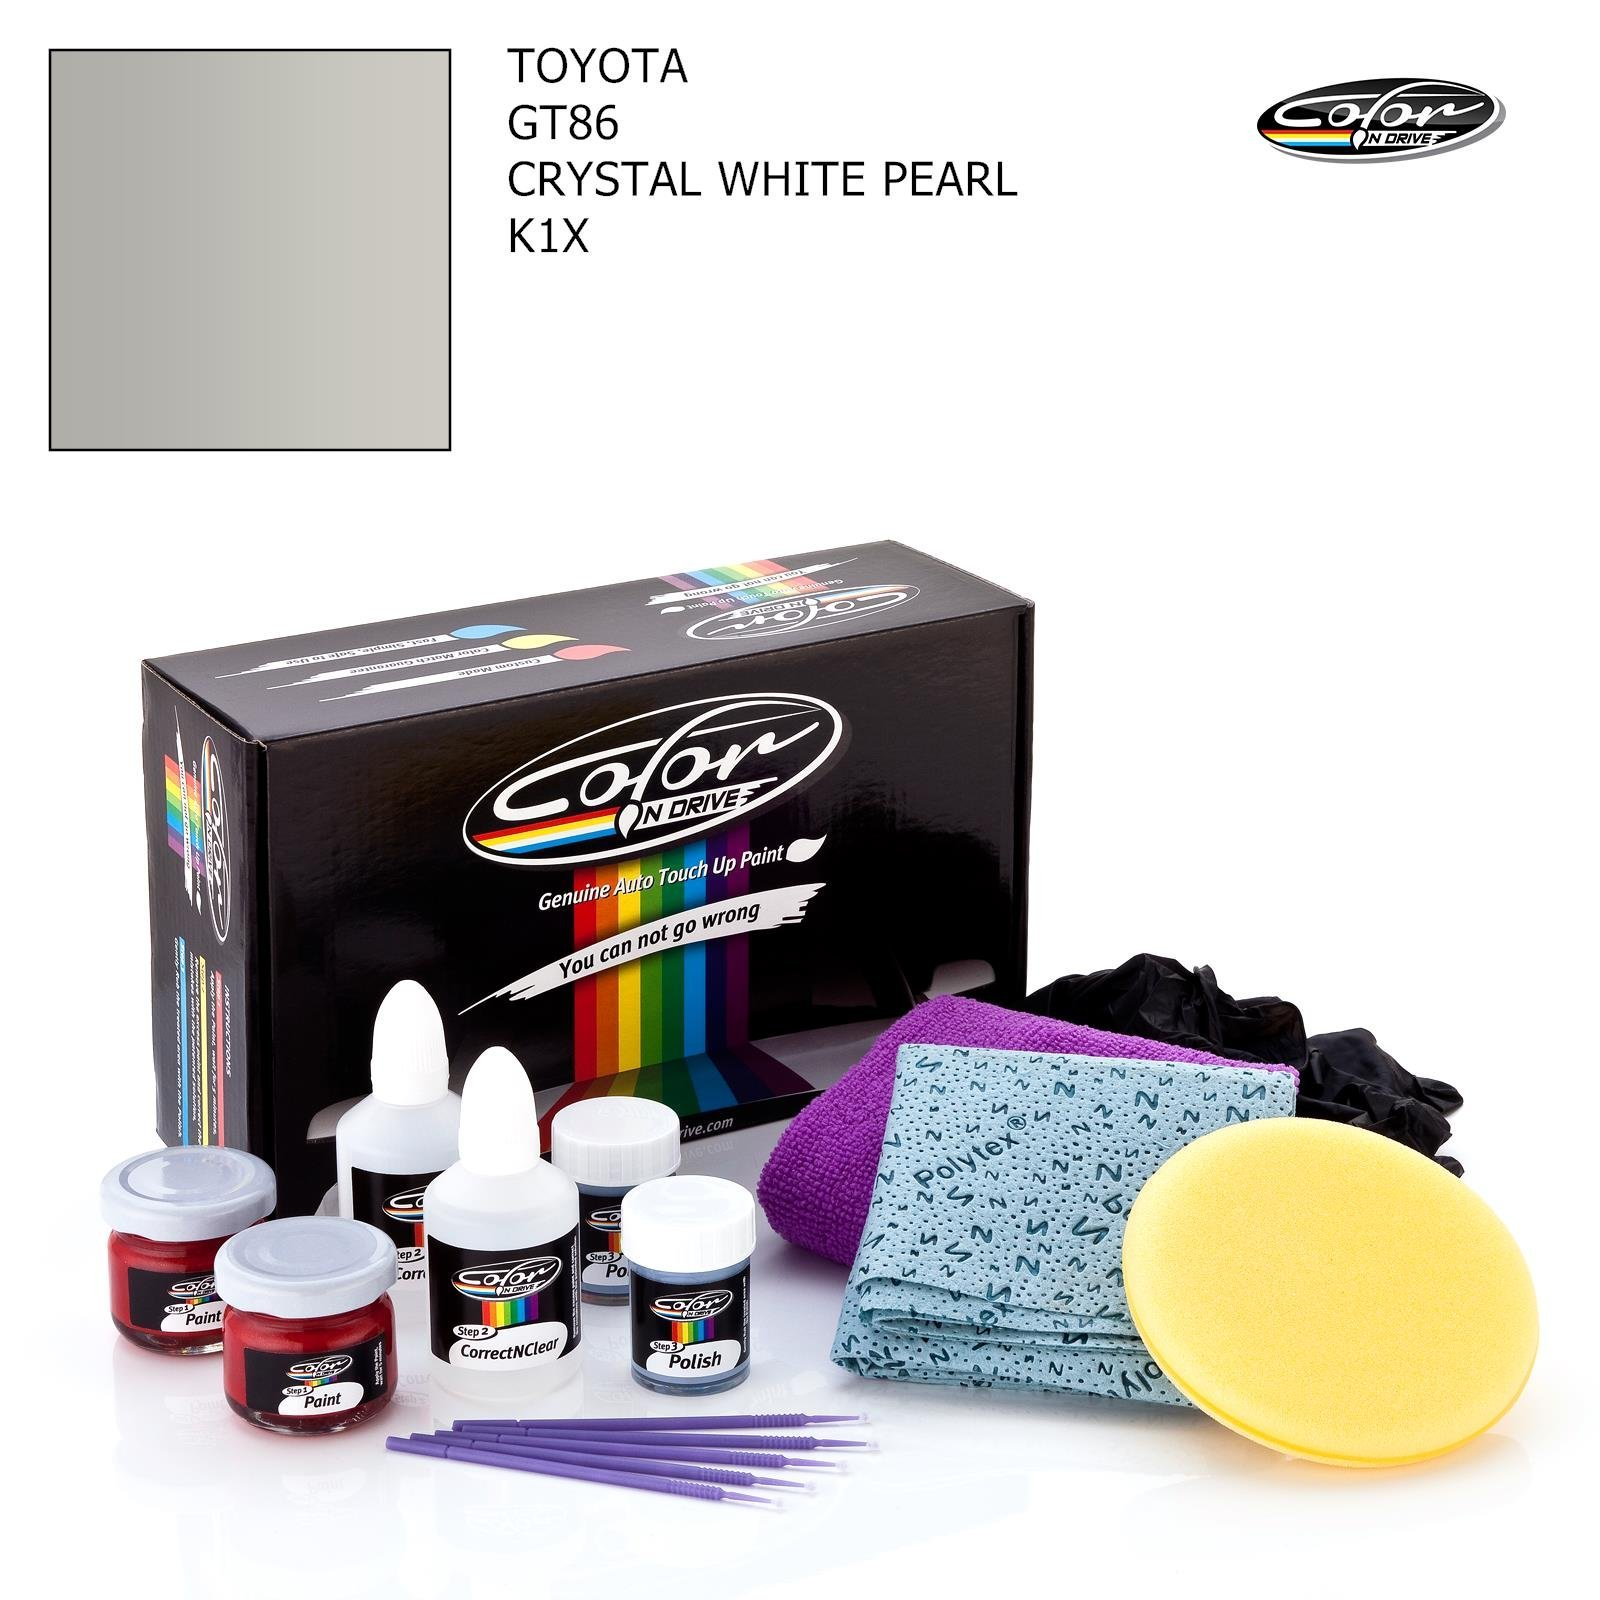 Toyota GT86 / Crystal White Pearl - K1X / Color N Drive Touch UP Paint System for Paint Chips and Scratches/Basic Pack